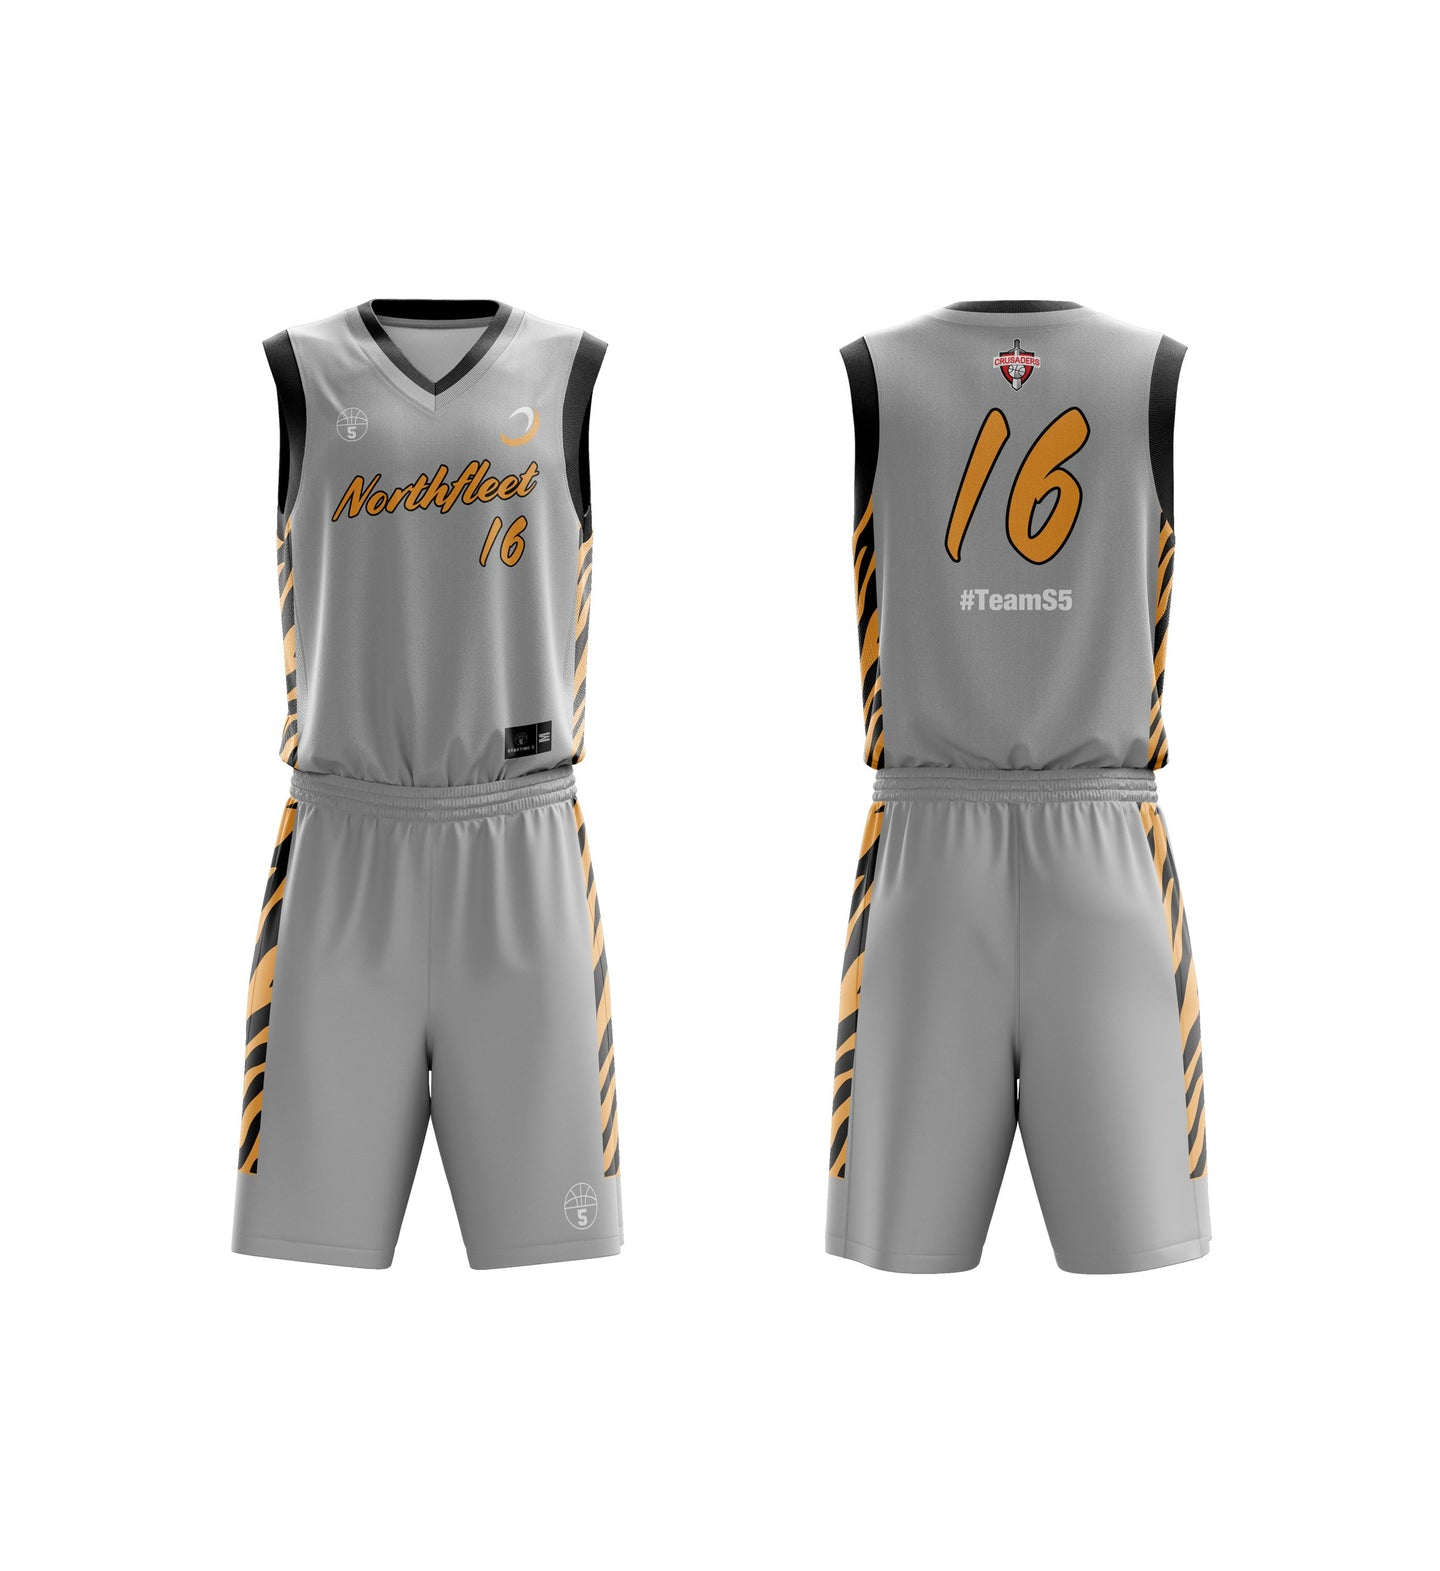 STARTING 5 Sublimated Basketball Kit Single-Sided Example 27